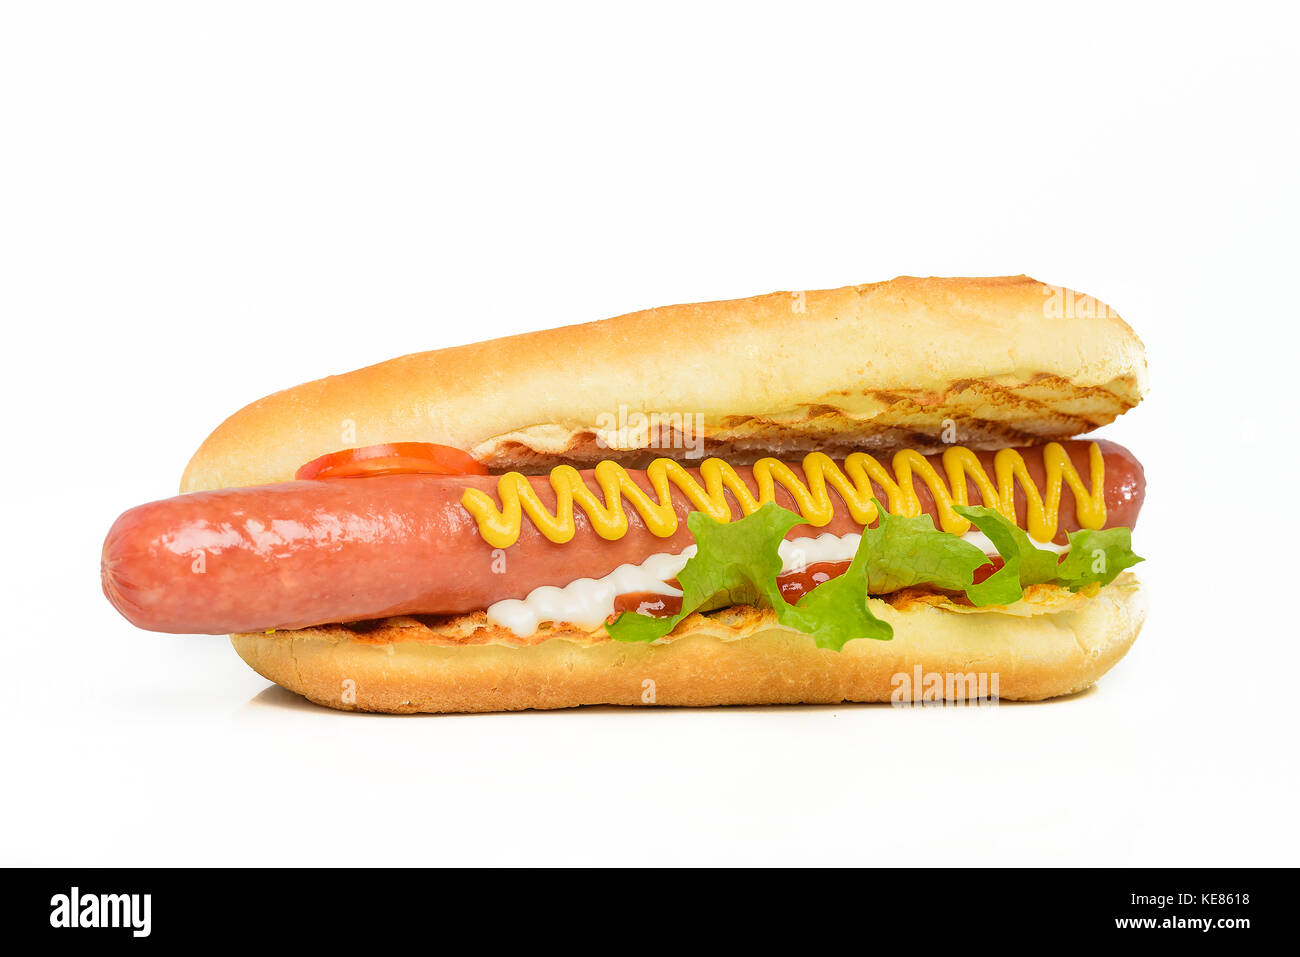 Appetizing hot dog flavored with mustard isolated on white - Stock Image